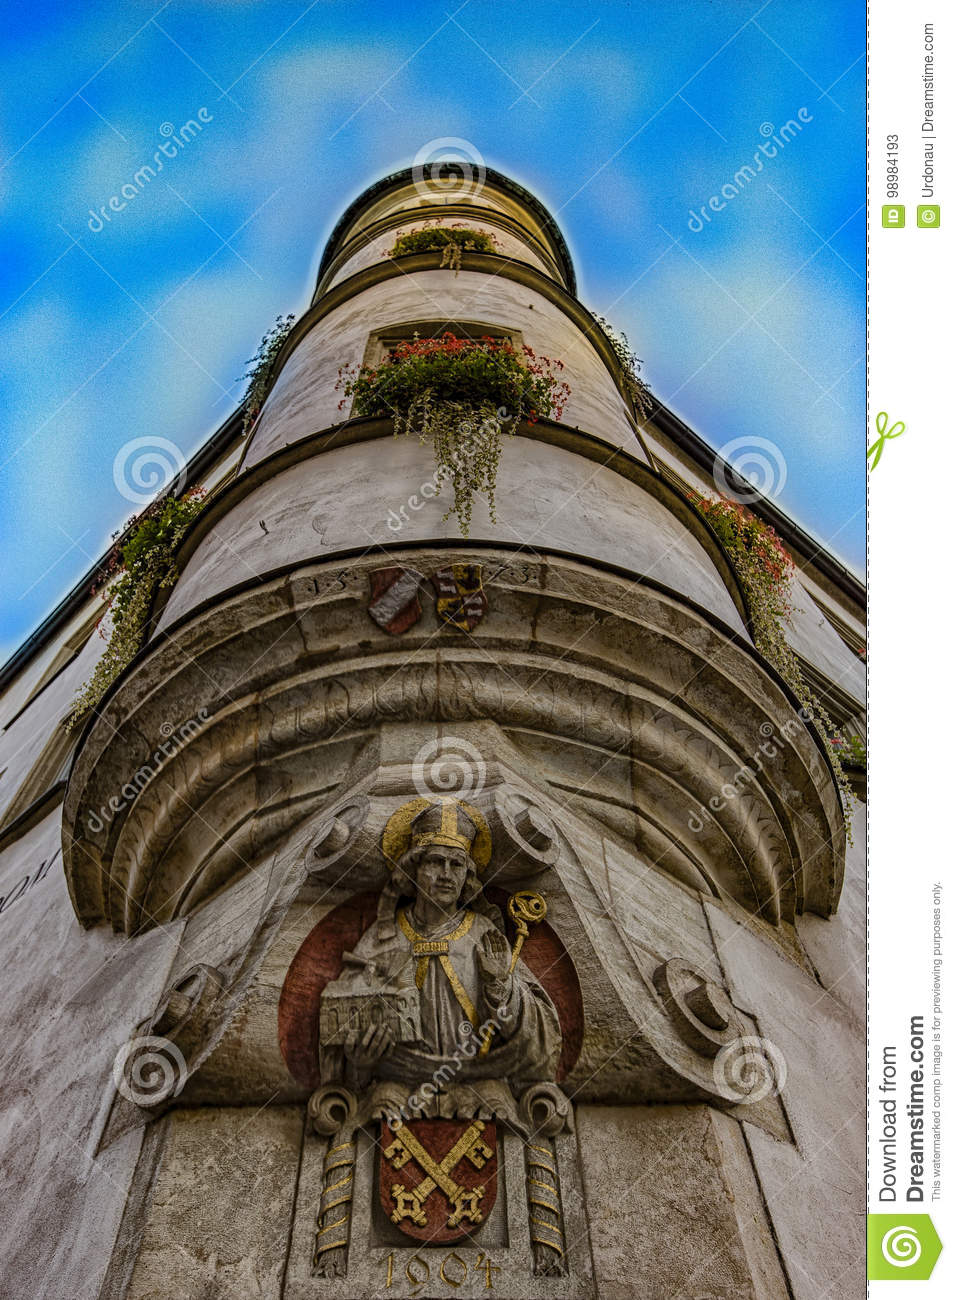 Regensburg Events Regensburg Facade Stock Image Image Of Germany Travel 98984193